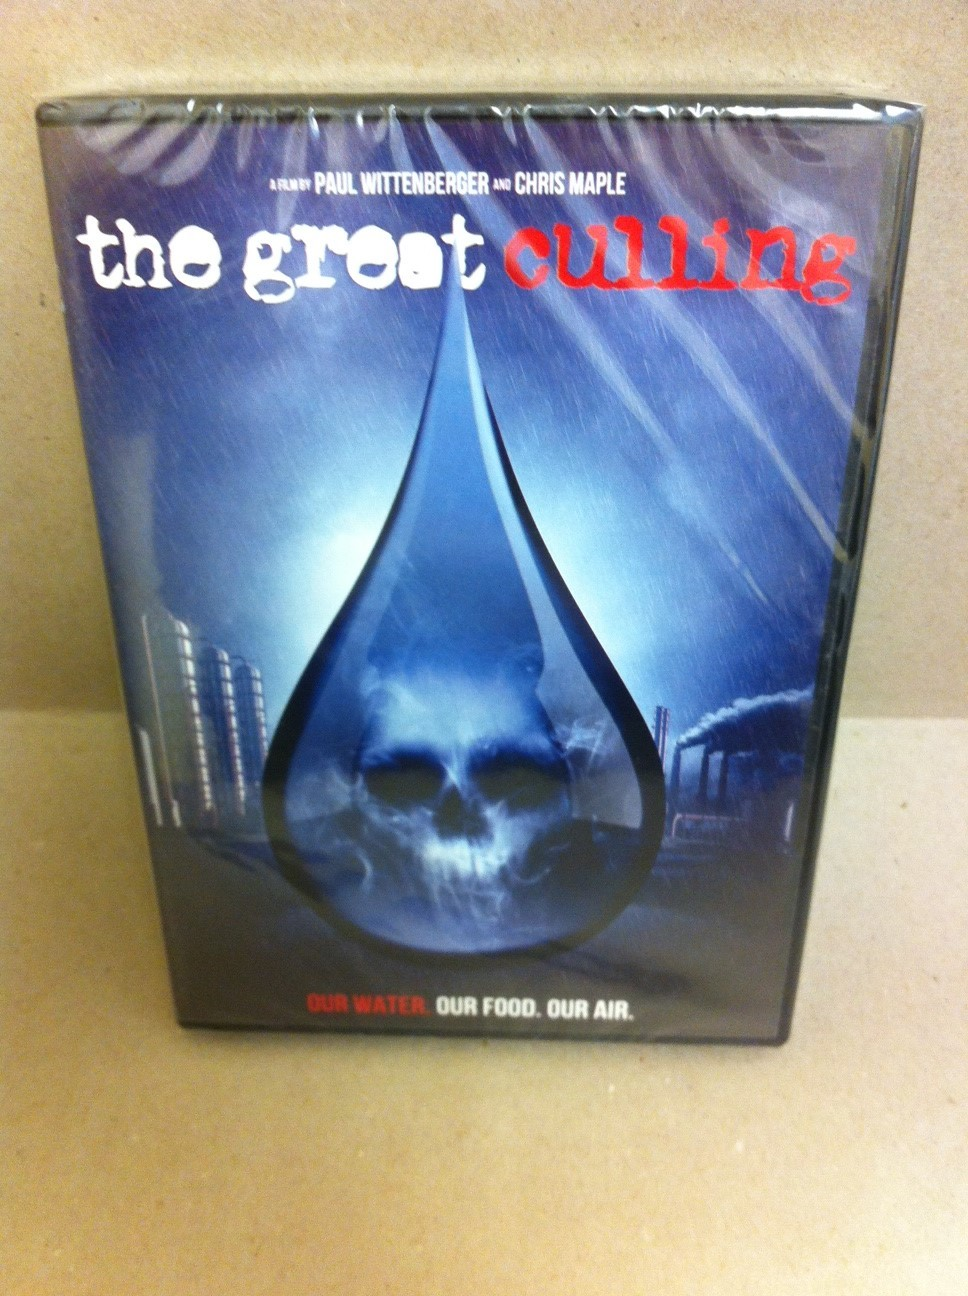 The Great Culling -- Our Water  Our Food  Our Air  DVD 2374